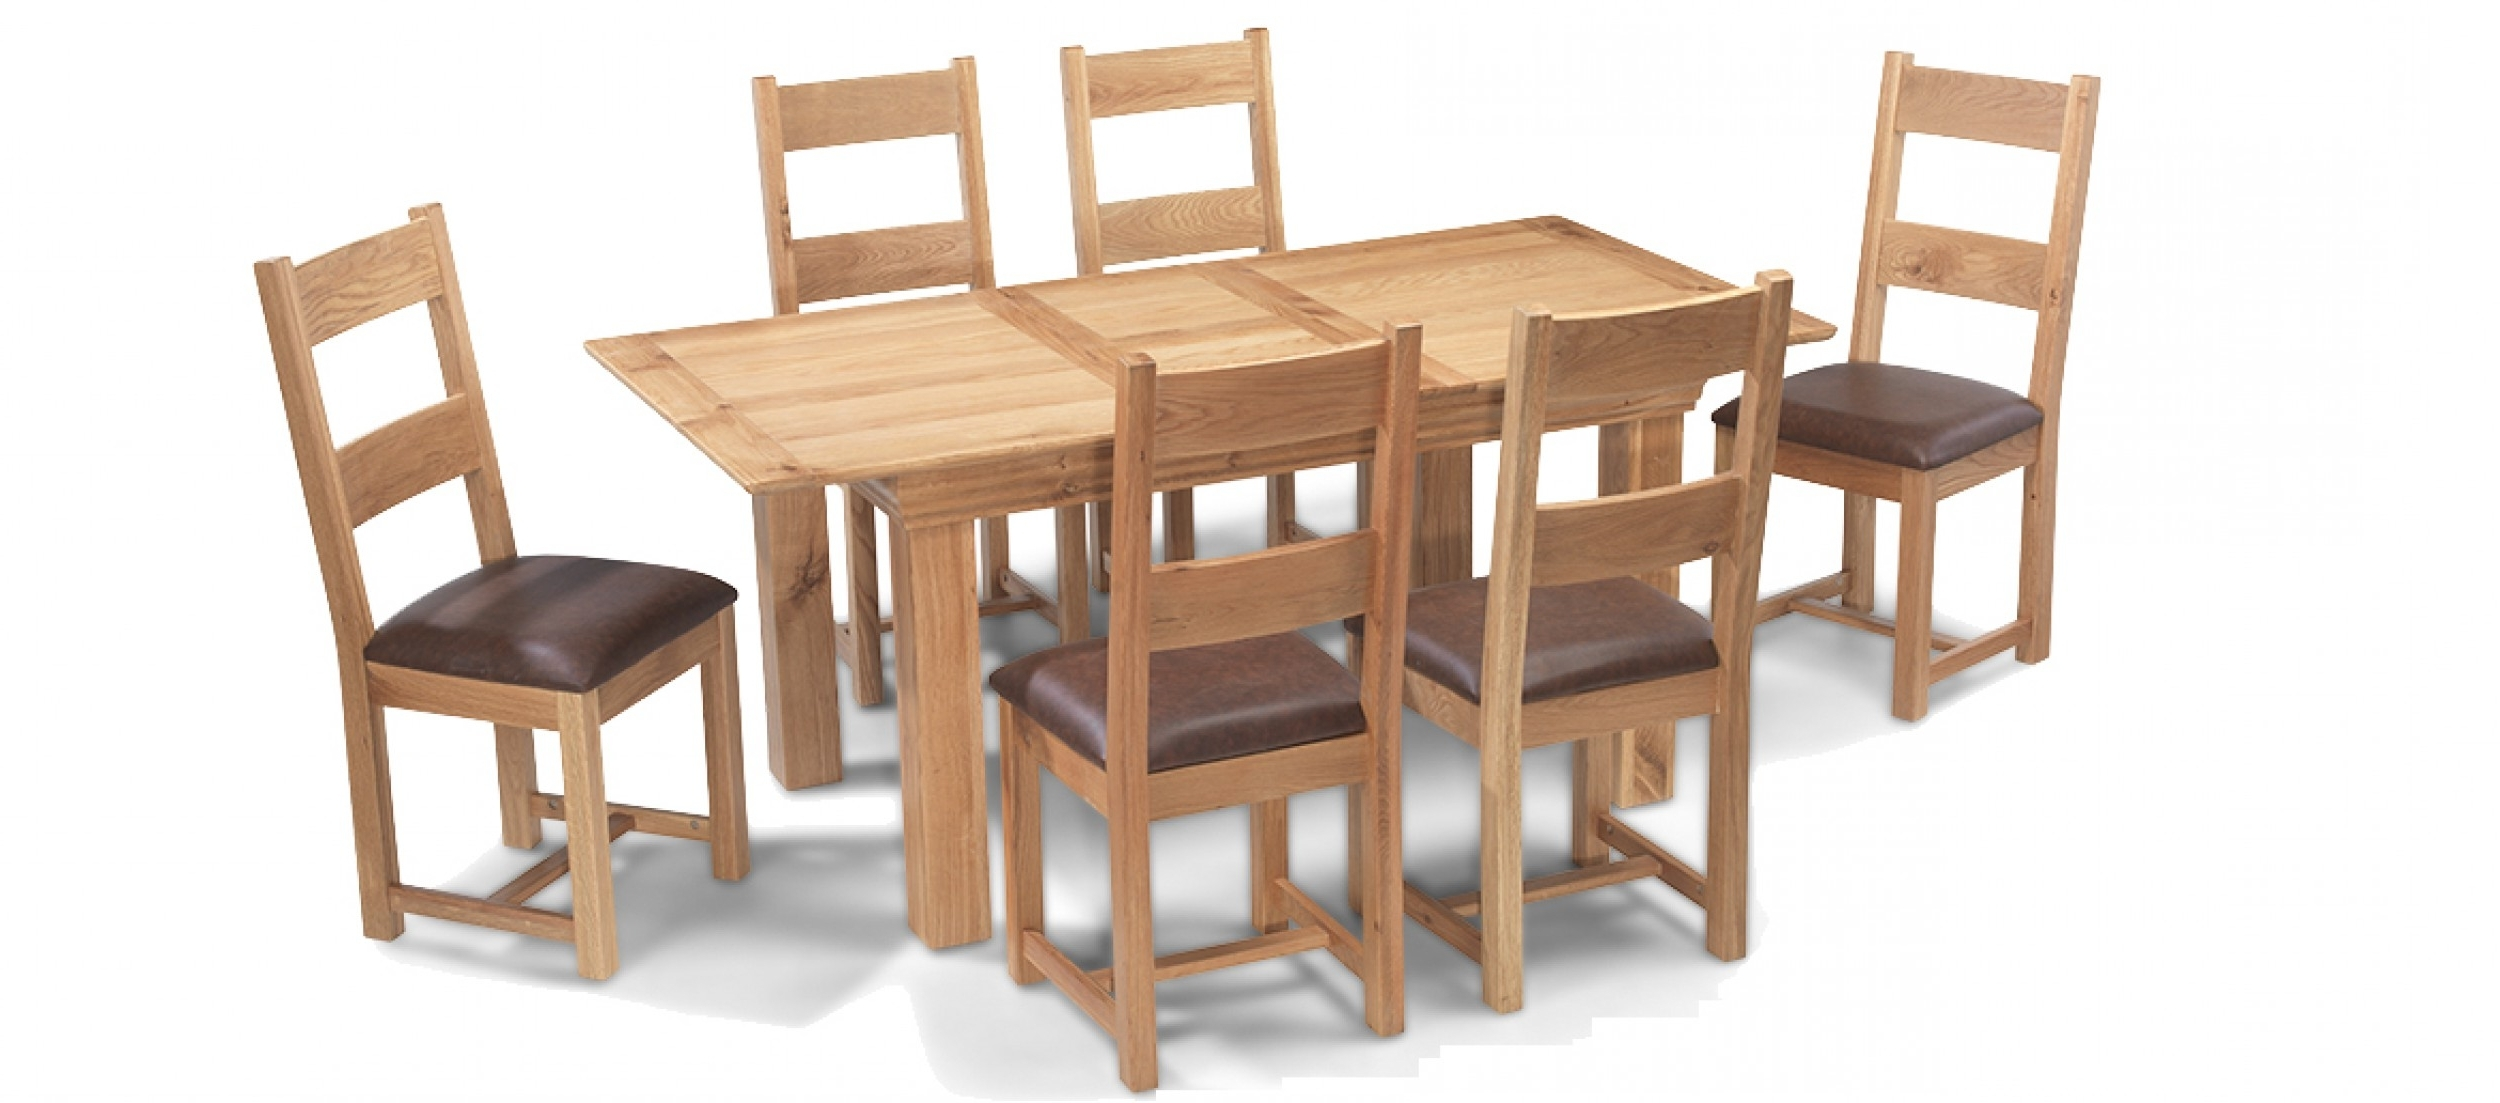 Newest Extending Dining Tables With 6 Chairs Inside Constance Oak 140 180 Cm Extending Dining Table And 6 Chairs (Gallery 13 of 25)